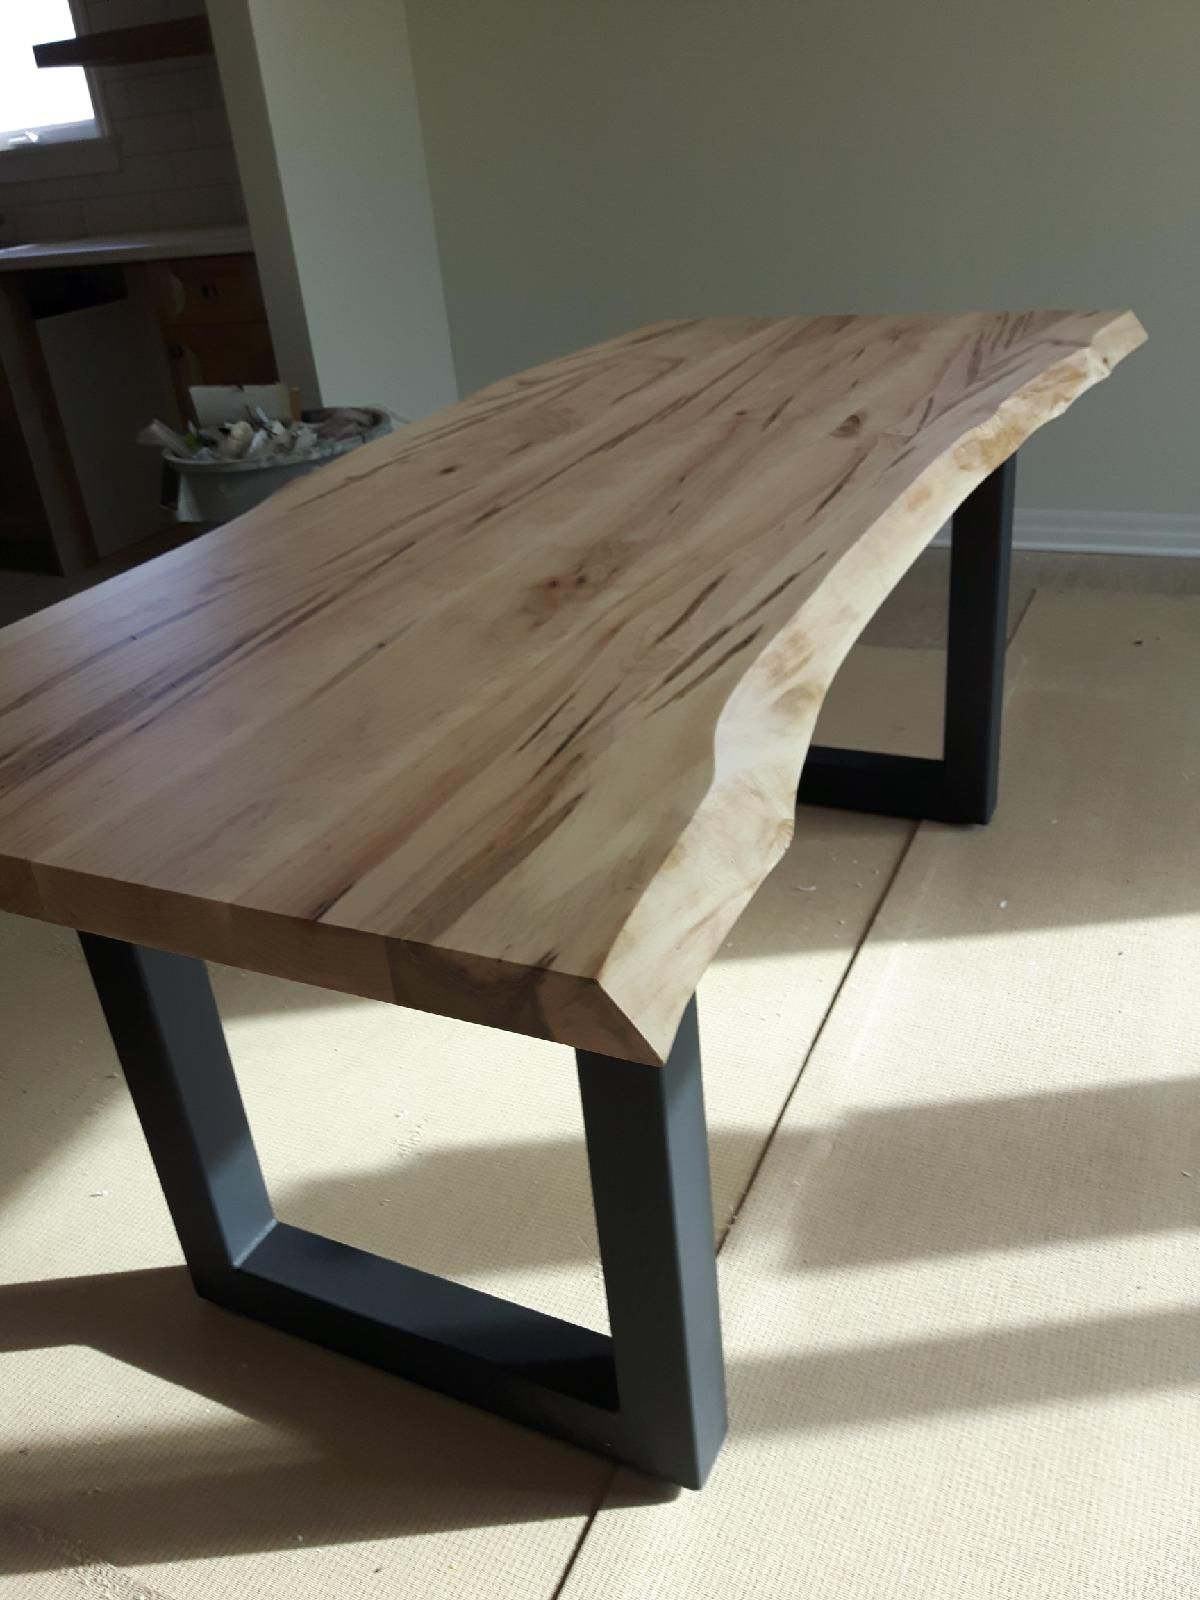 Live Edge Wormy Maple Table With Steel Square Legs Www Simplicitysedge Com Live Edge Table Legs Maple Dining Table Live Edge Dining Table